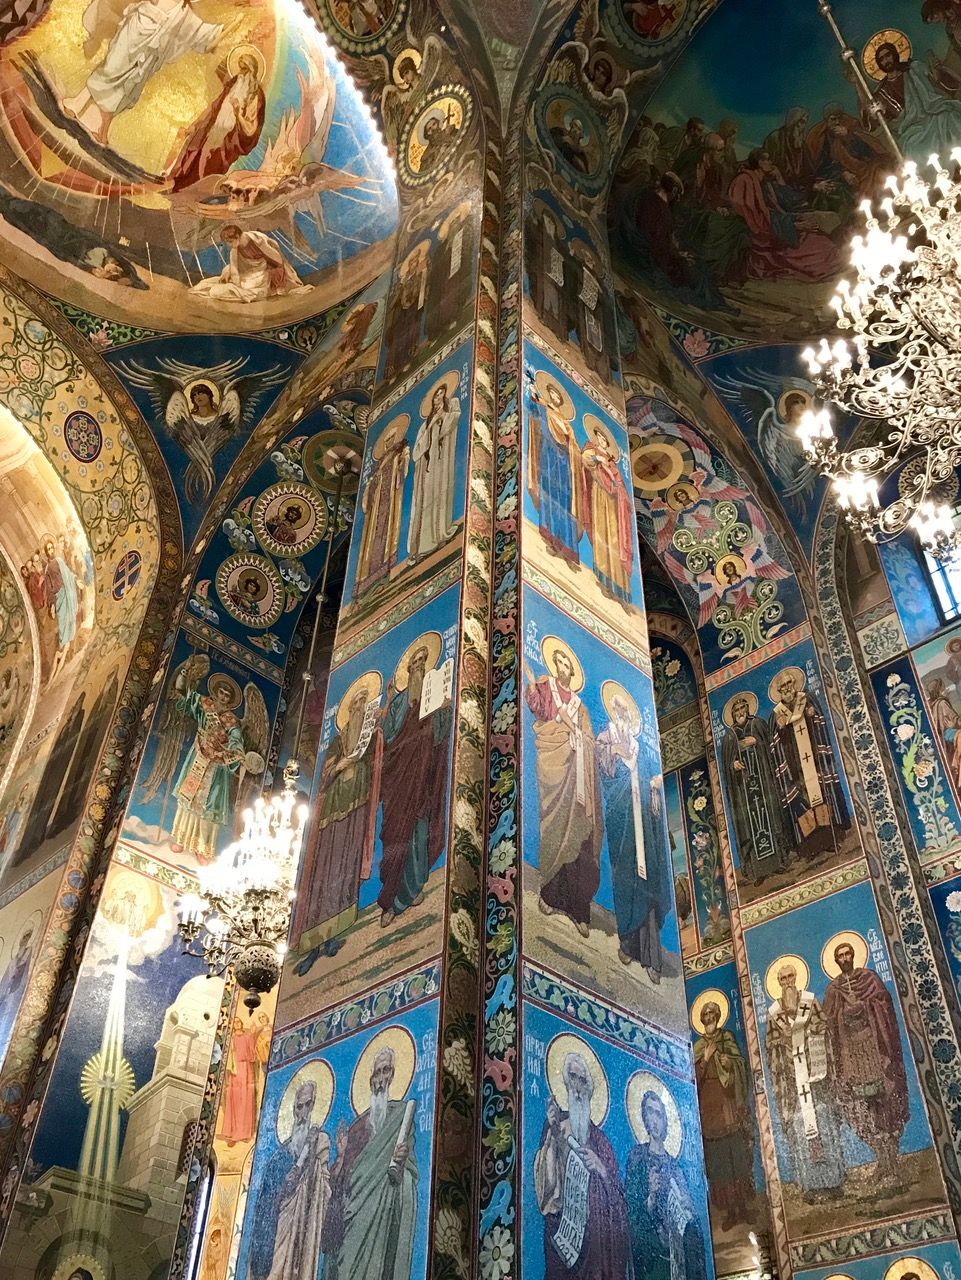 The Church of the Savior on Spilled Blood, Inside, Saint Petersburg